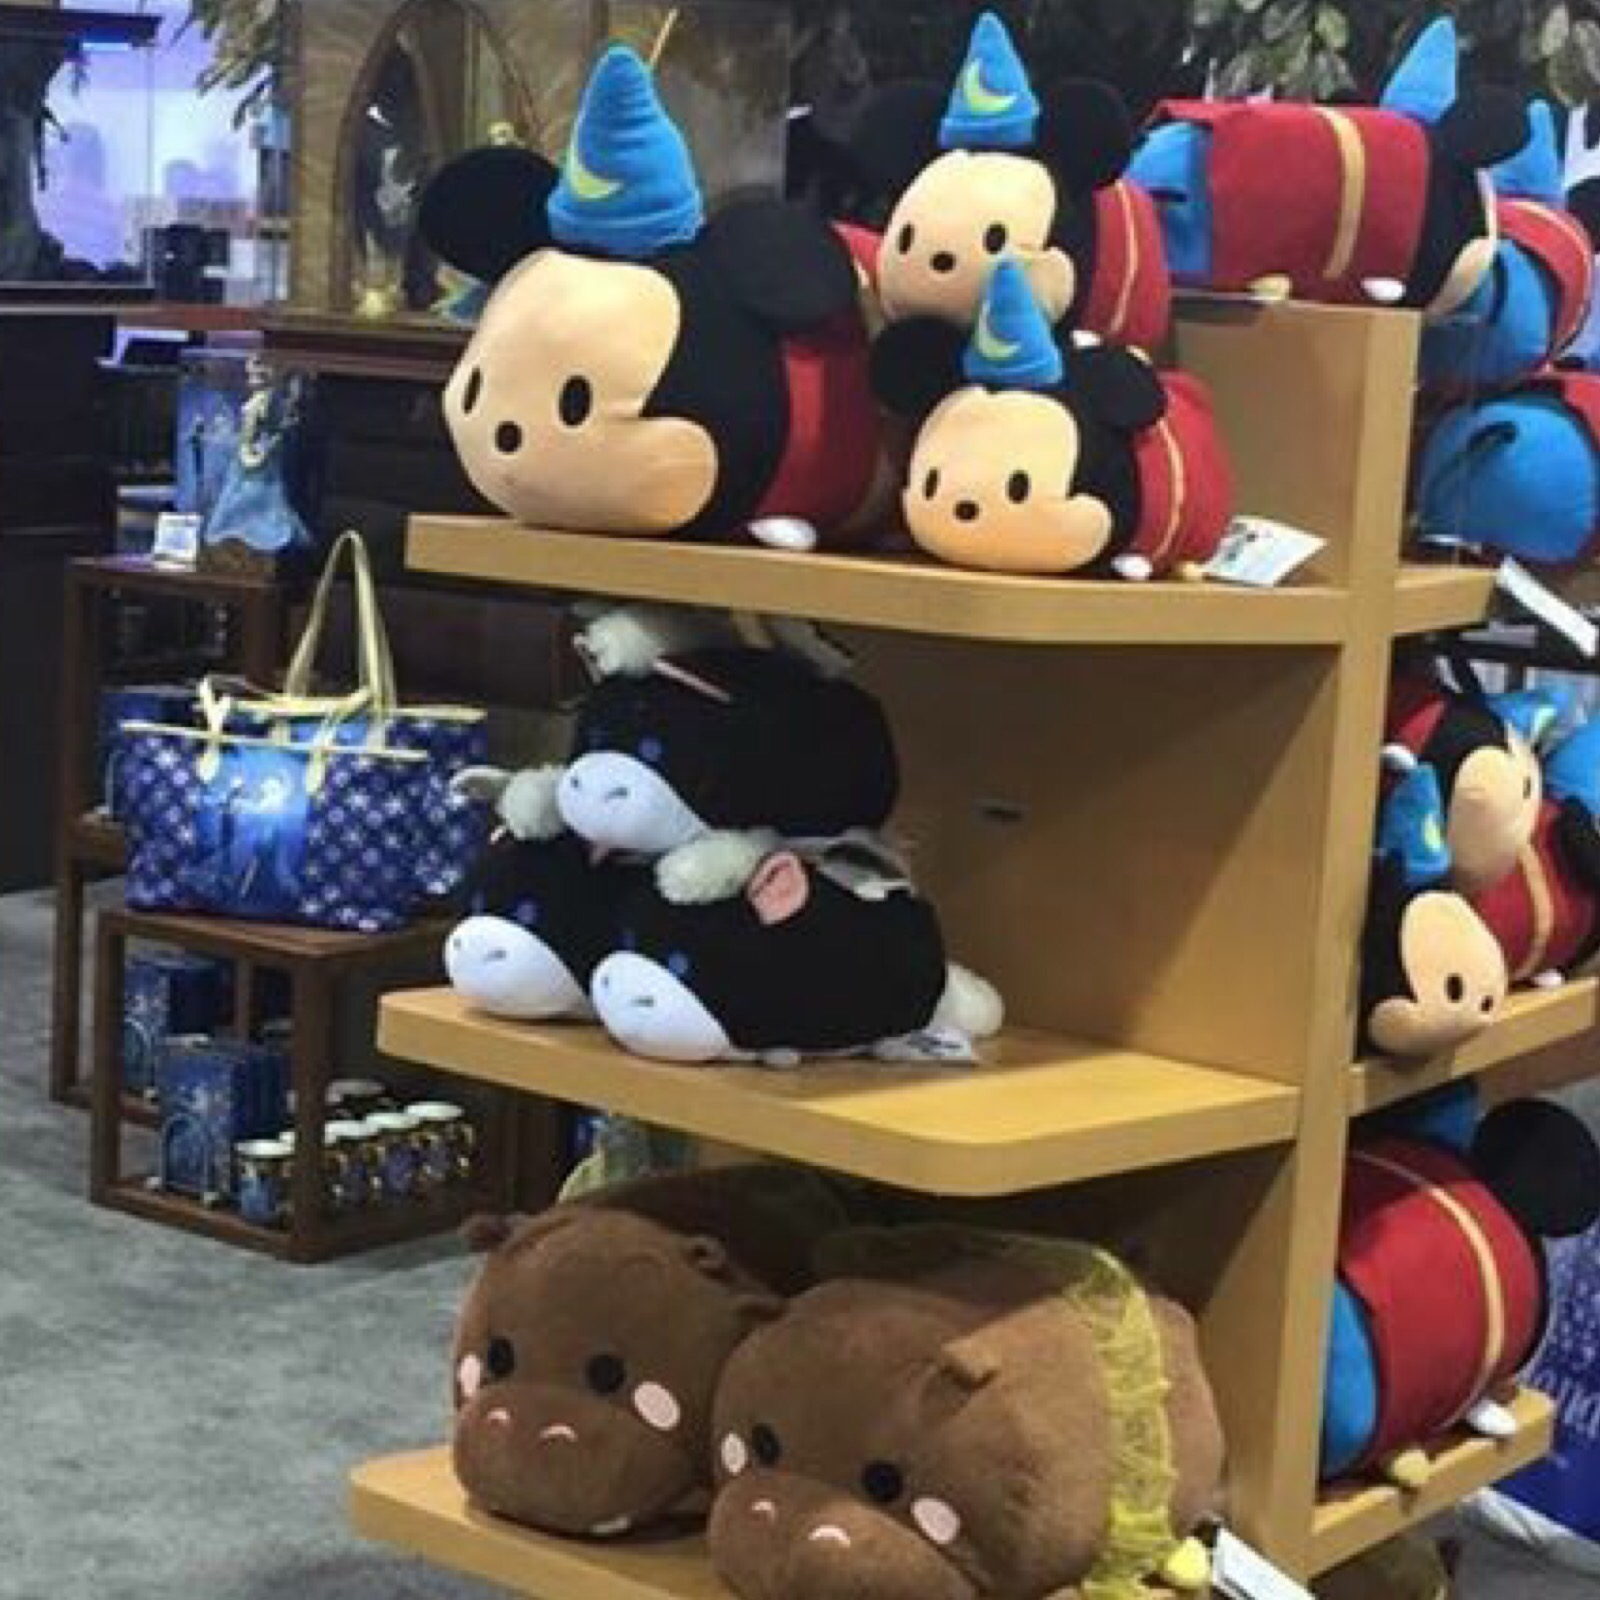 First Look At The New Fantasia Large And Medium Tsum Tsums